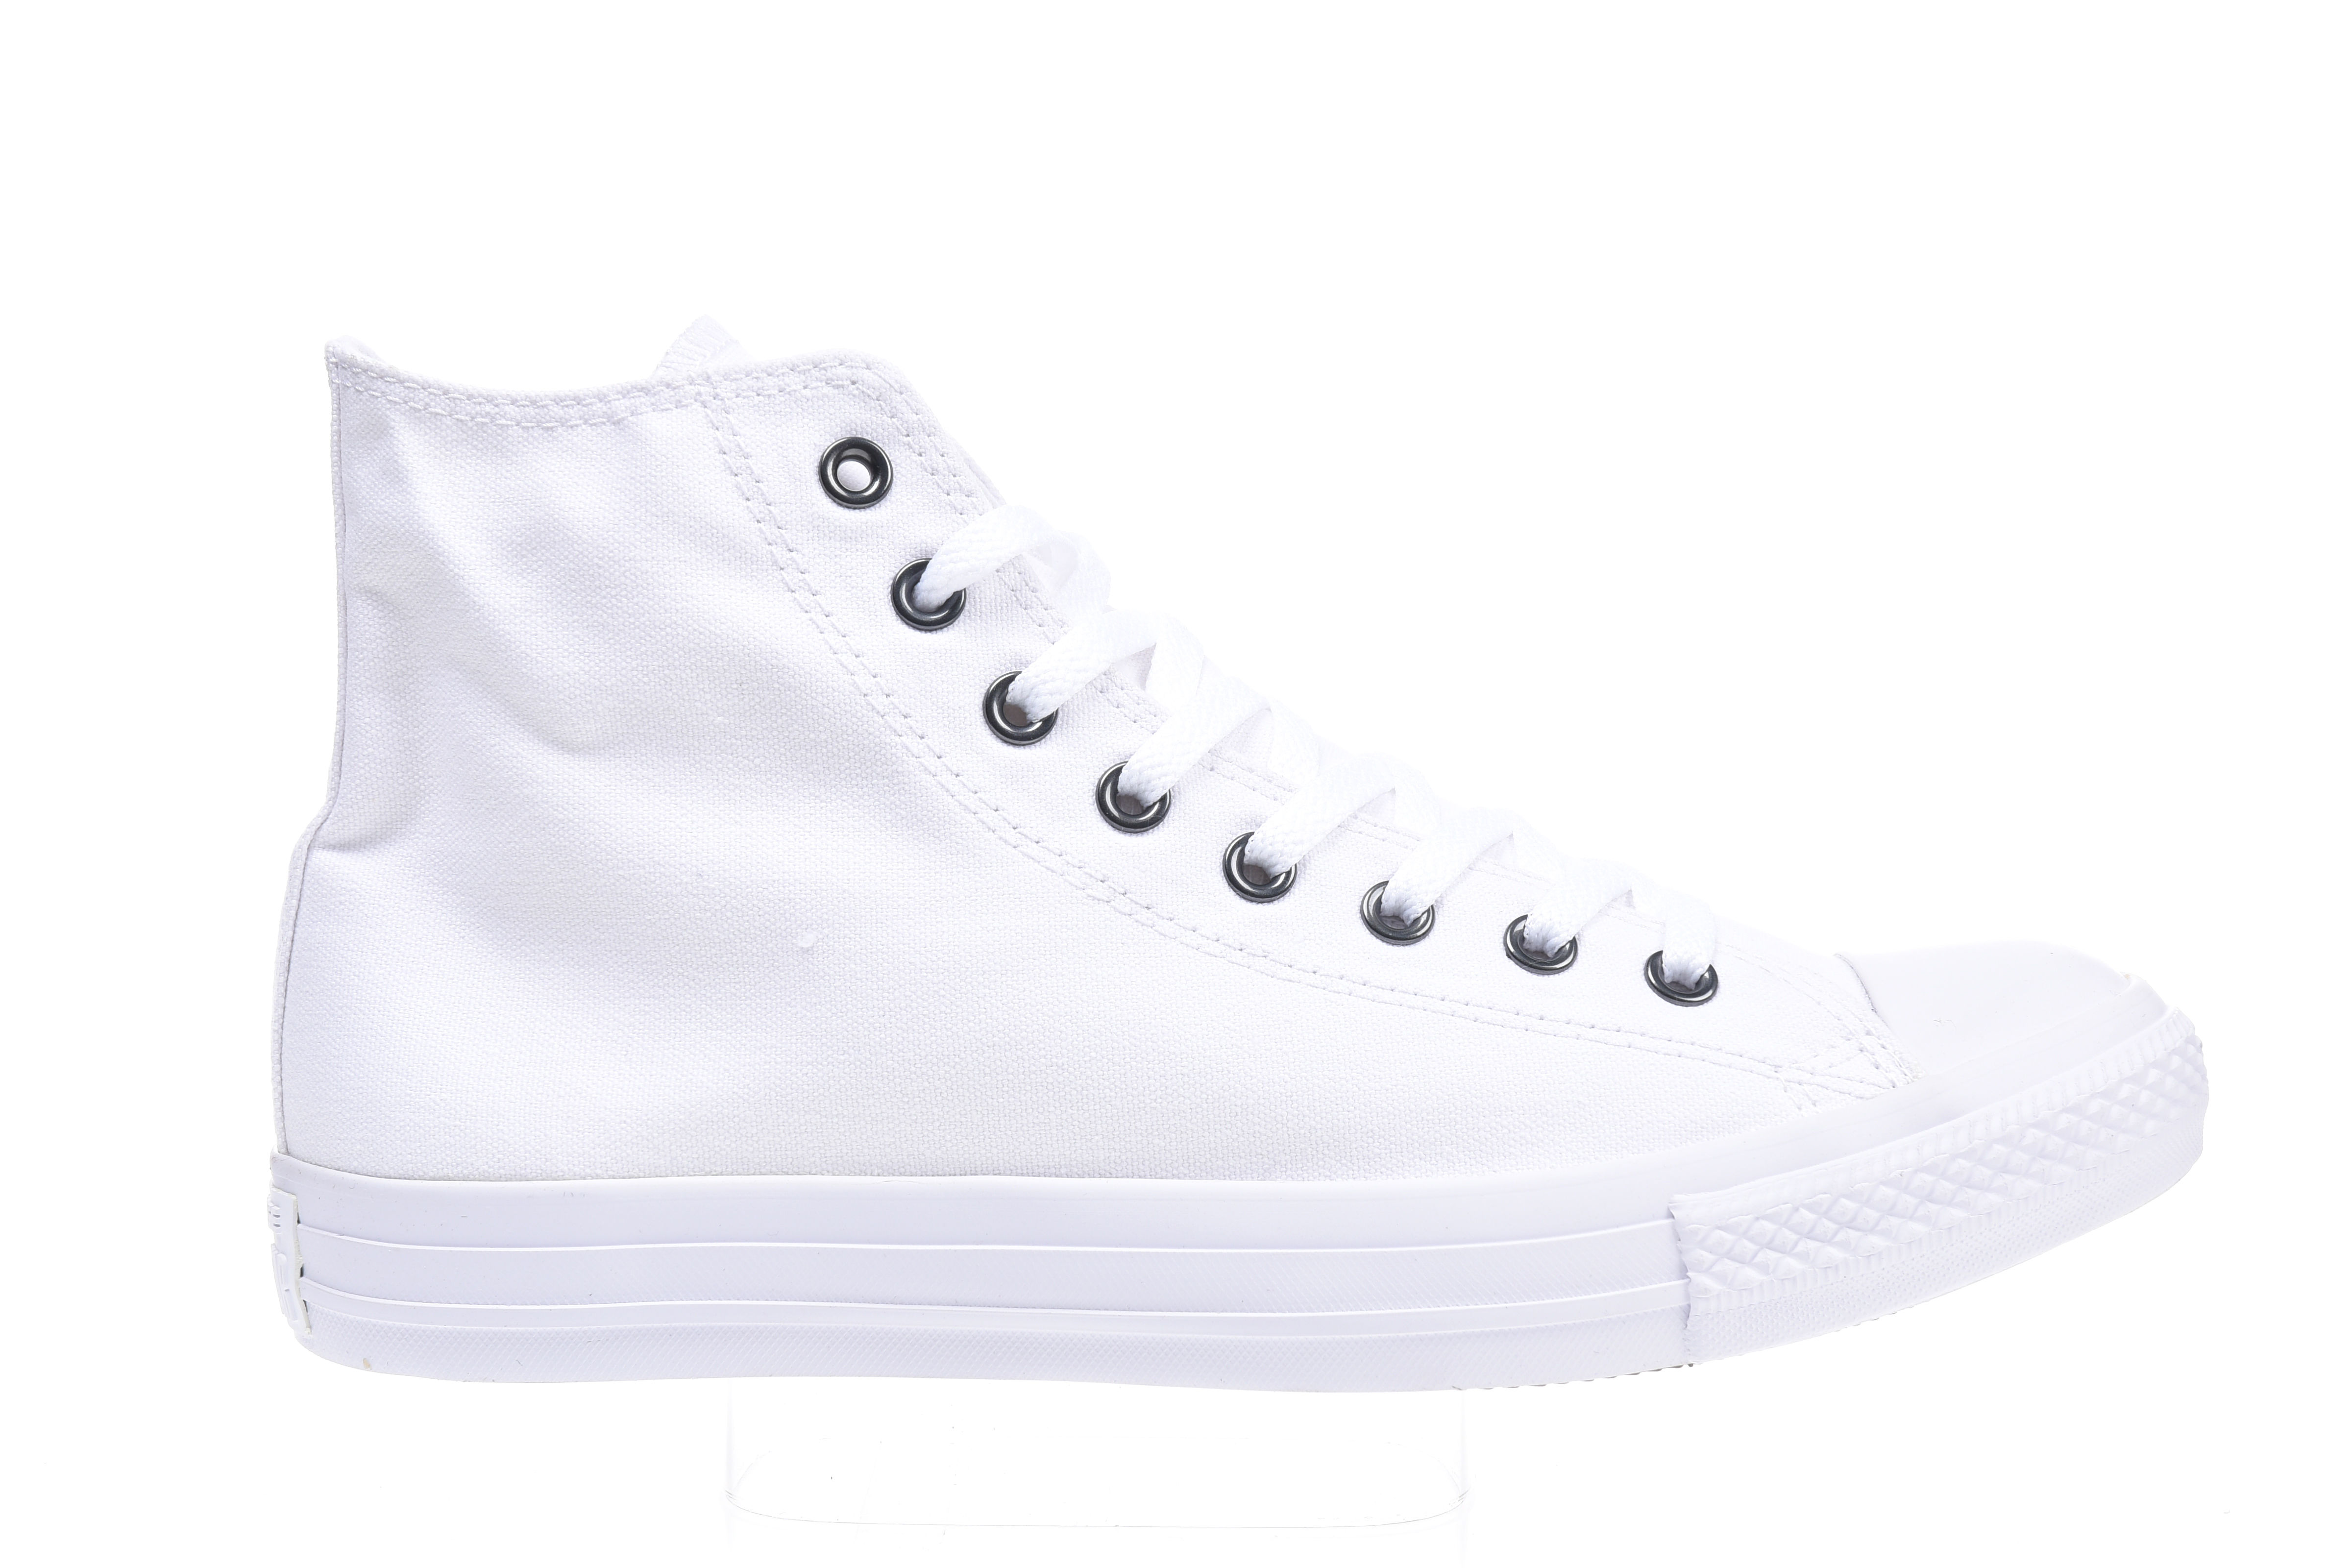 9b136bc38846 Converse All Star Hi - Sneakers - White - Planet Sports